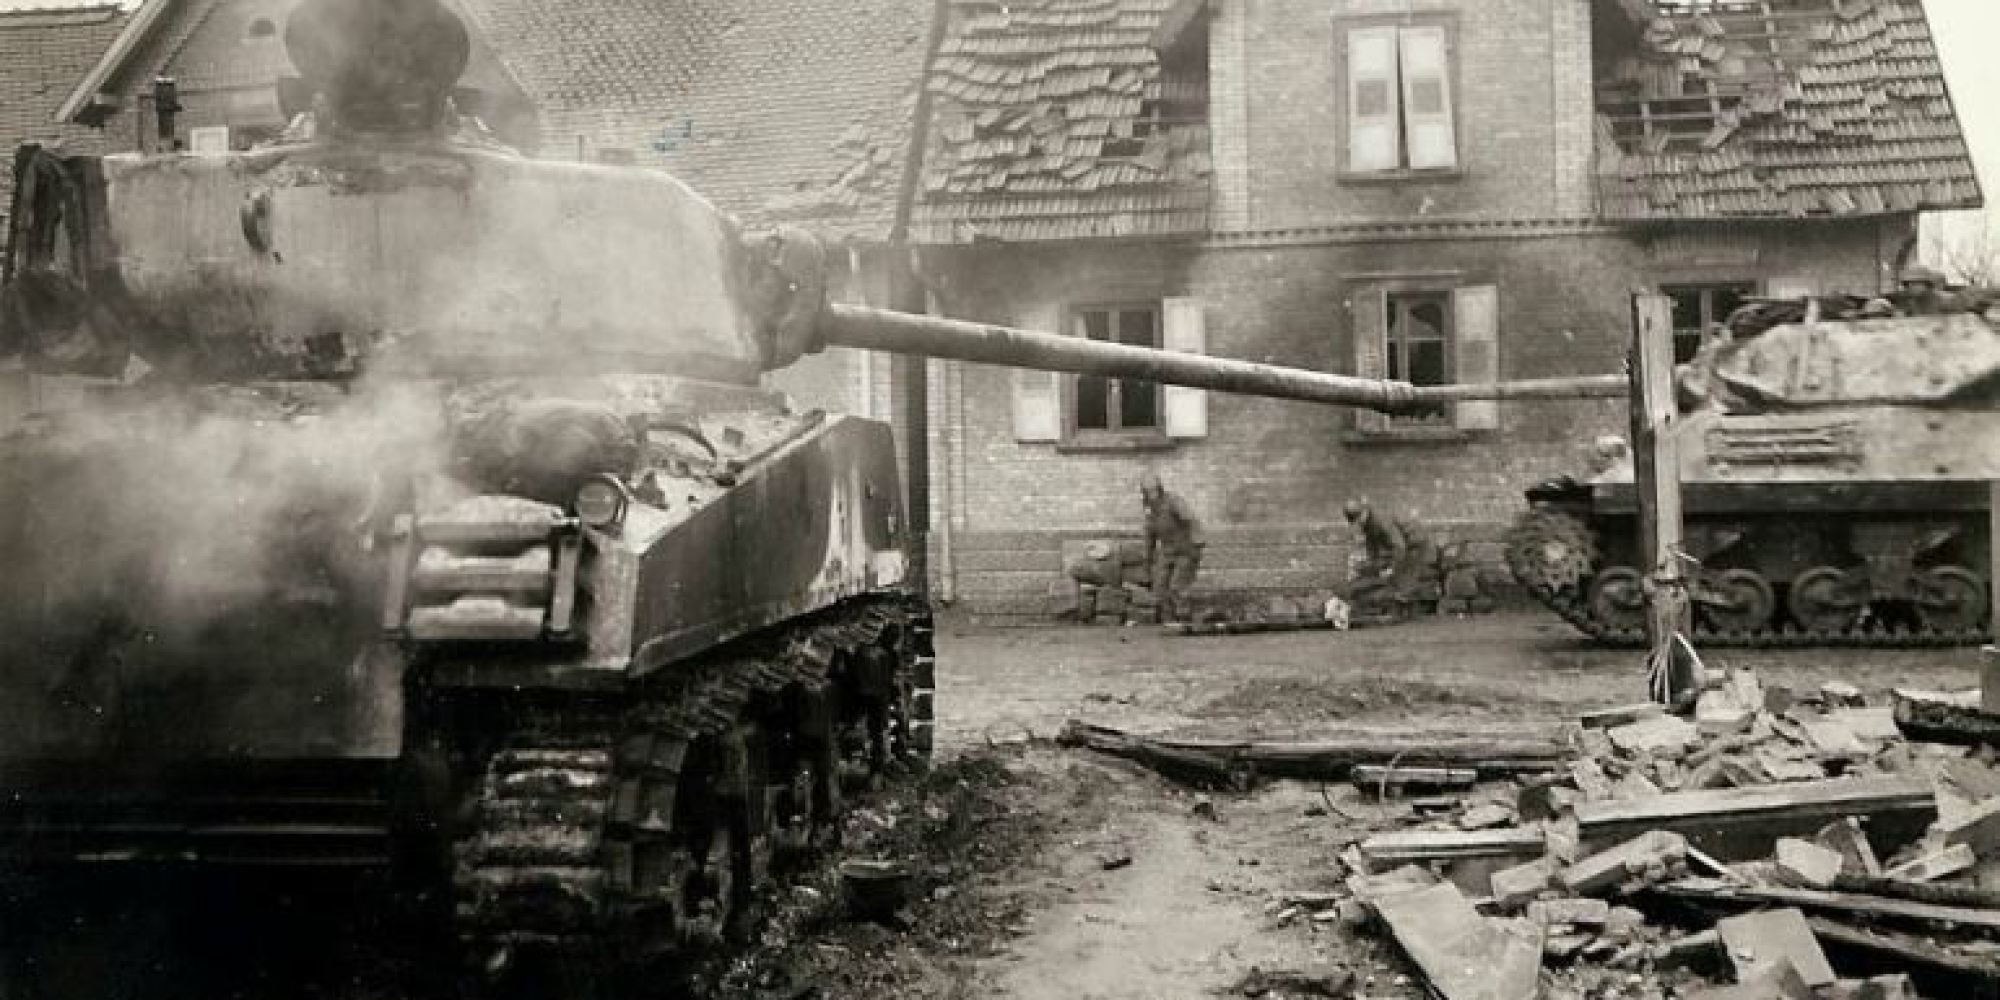 General Charles Day Palmer S Recently Discovered Pictures Show The Horrors Of The Nazi Retreat